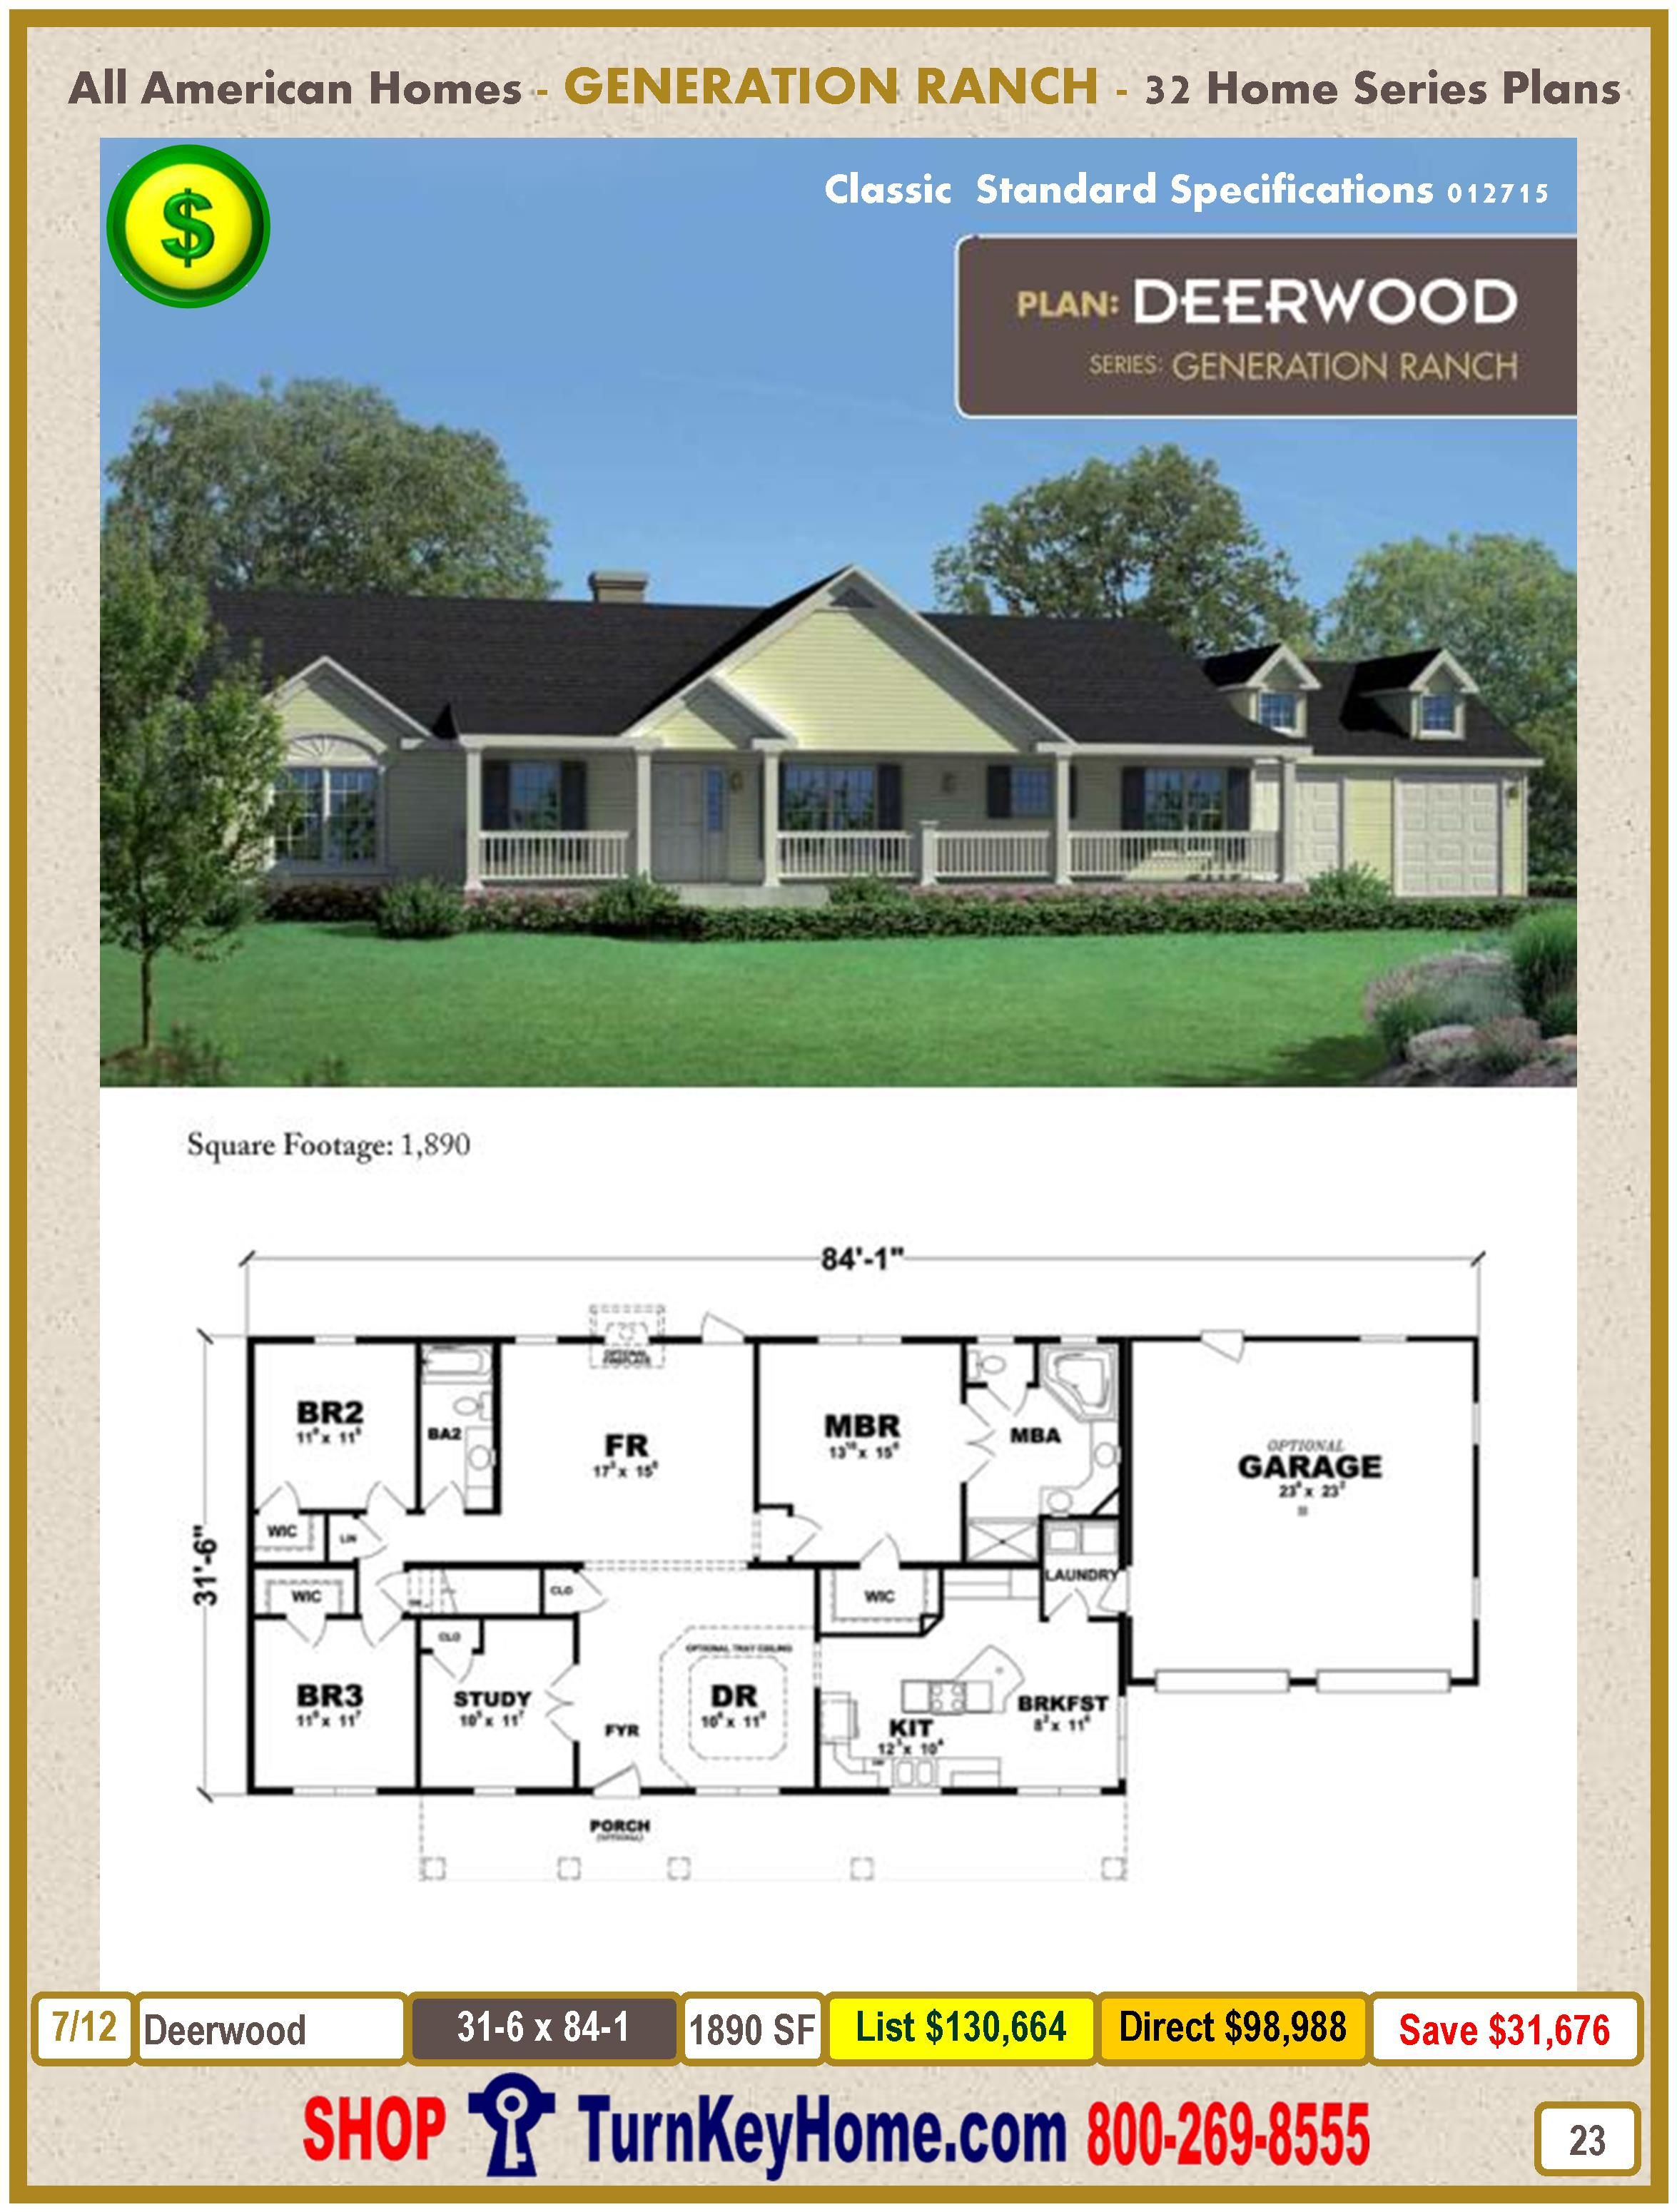 Deerwood Modular Home Ranch Plan Direct Priced From All American Homes Generation Ranch Series Modular H Ranch House Plans Modular Home Designs Modular Homes